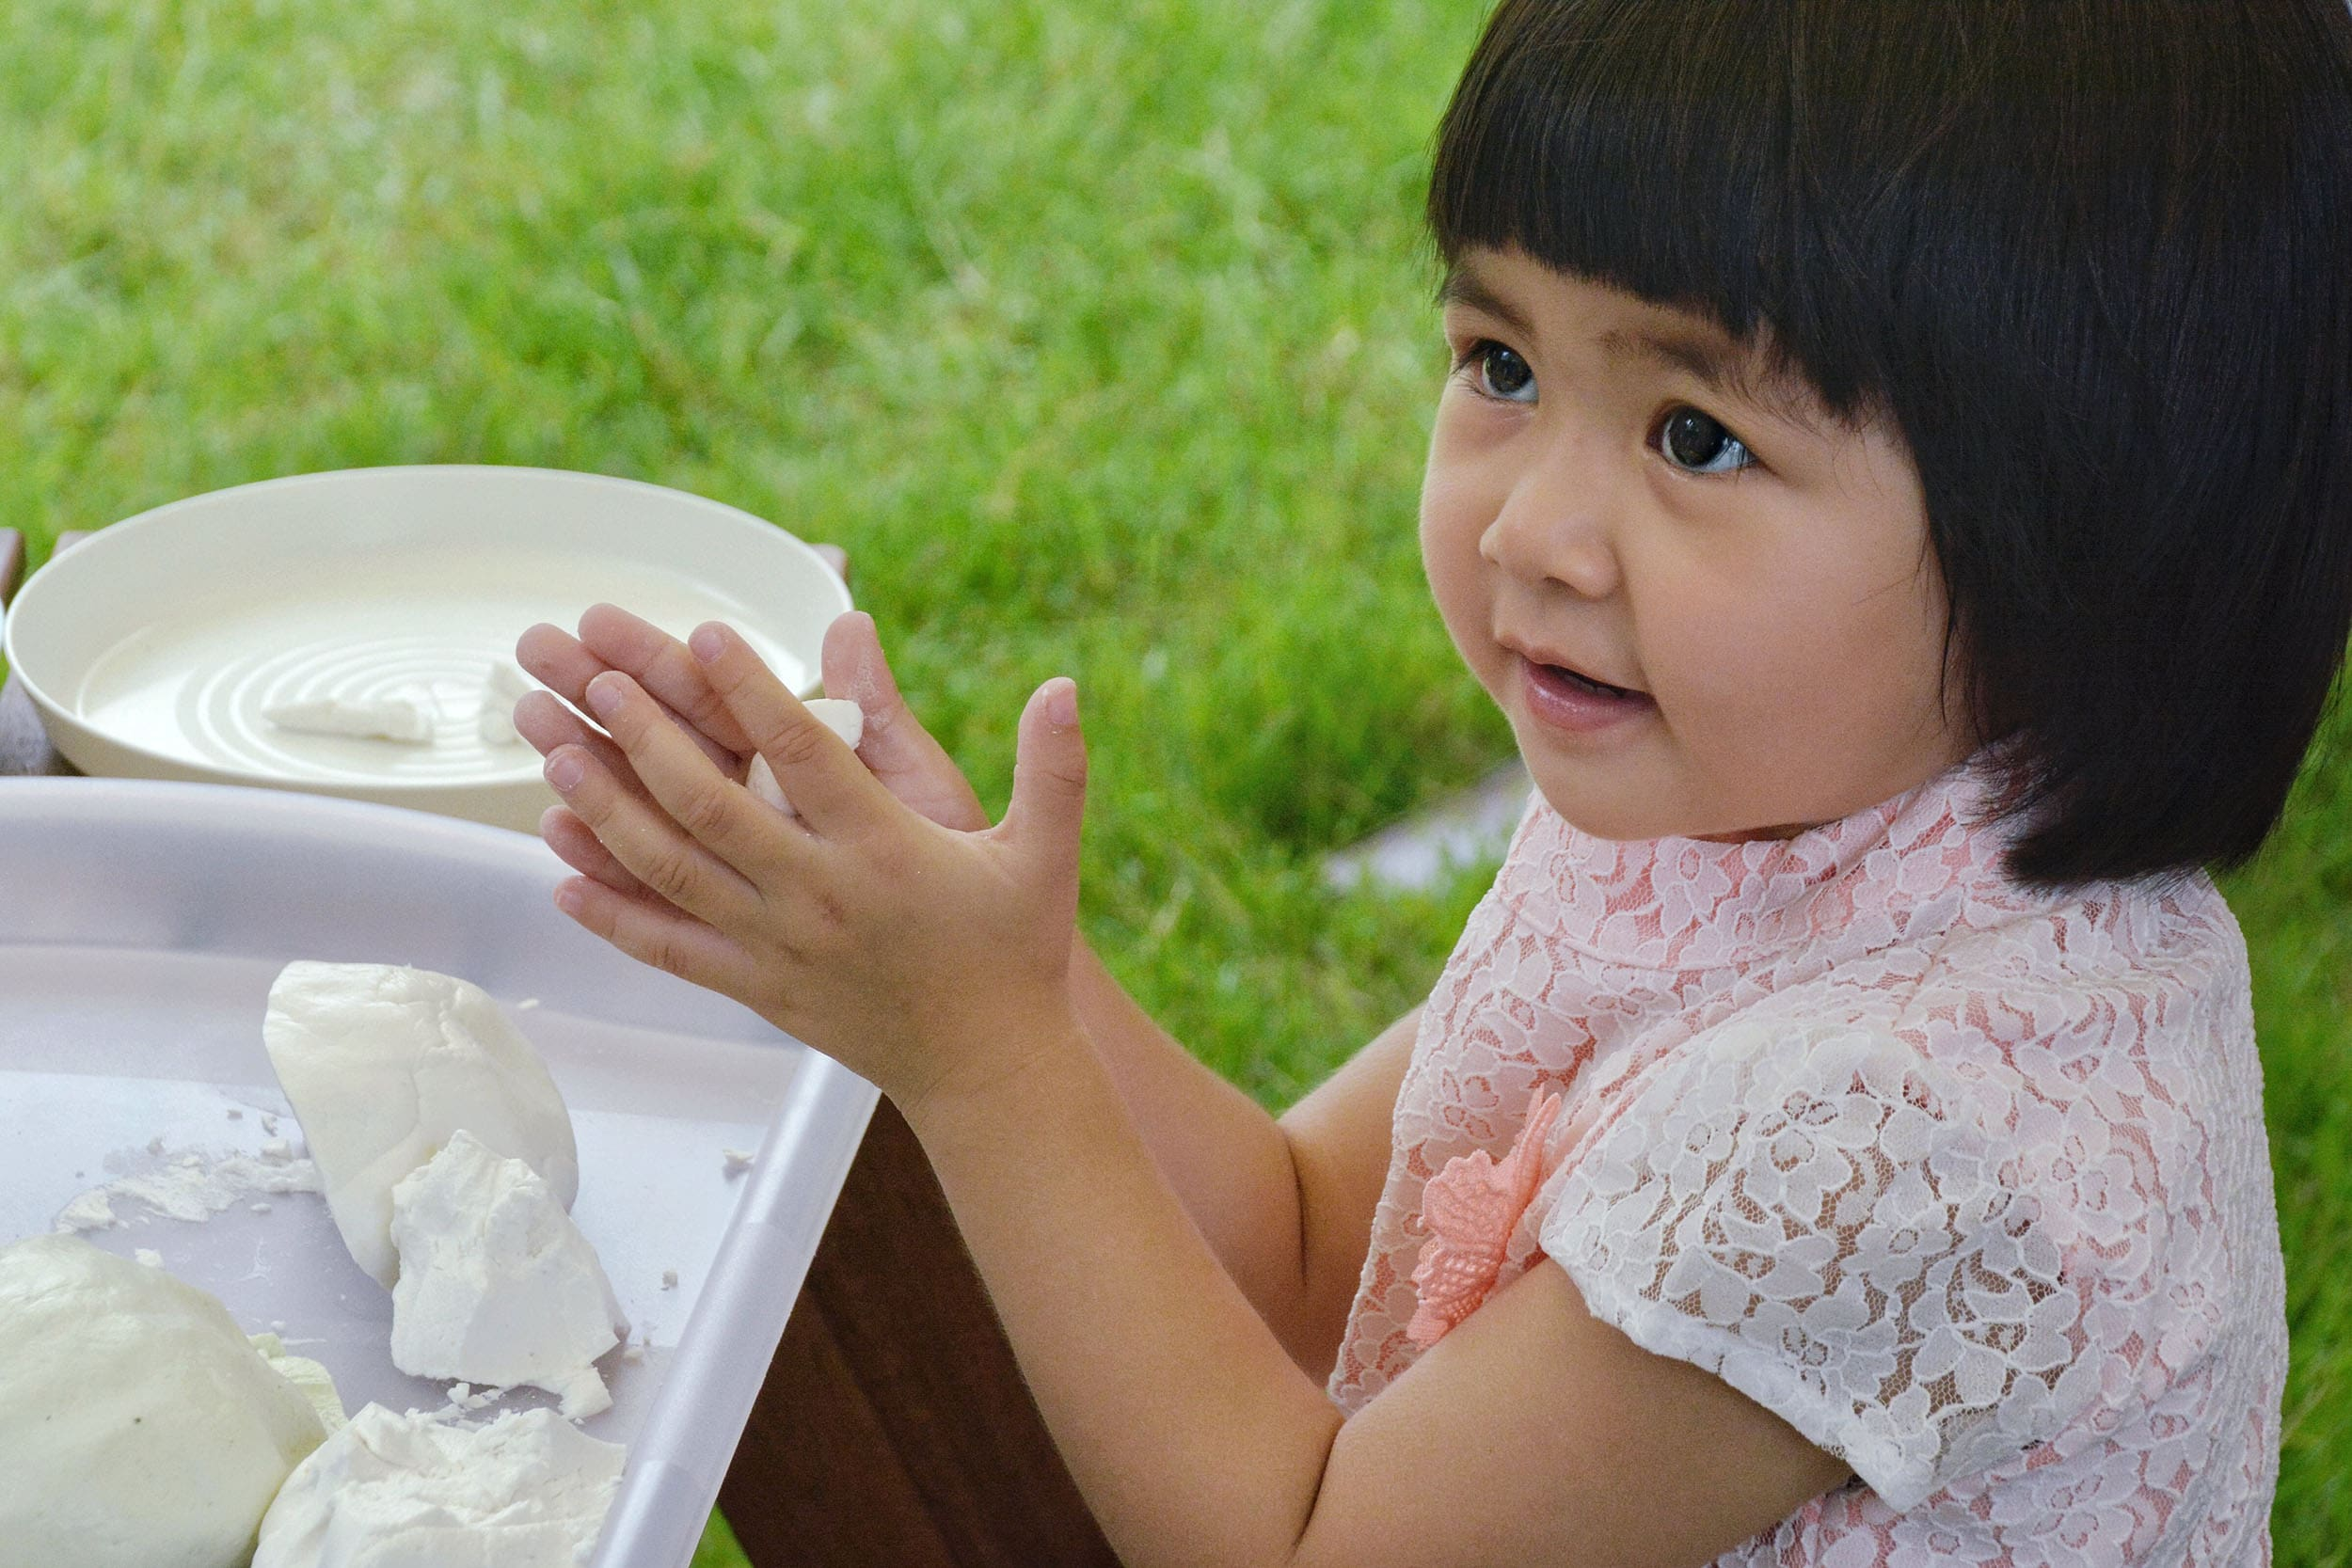 Pre-K students learn how to make their own floating krathong baskets to celebrate the Thai Loy Krathong festival